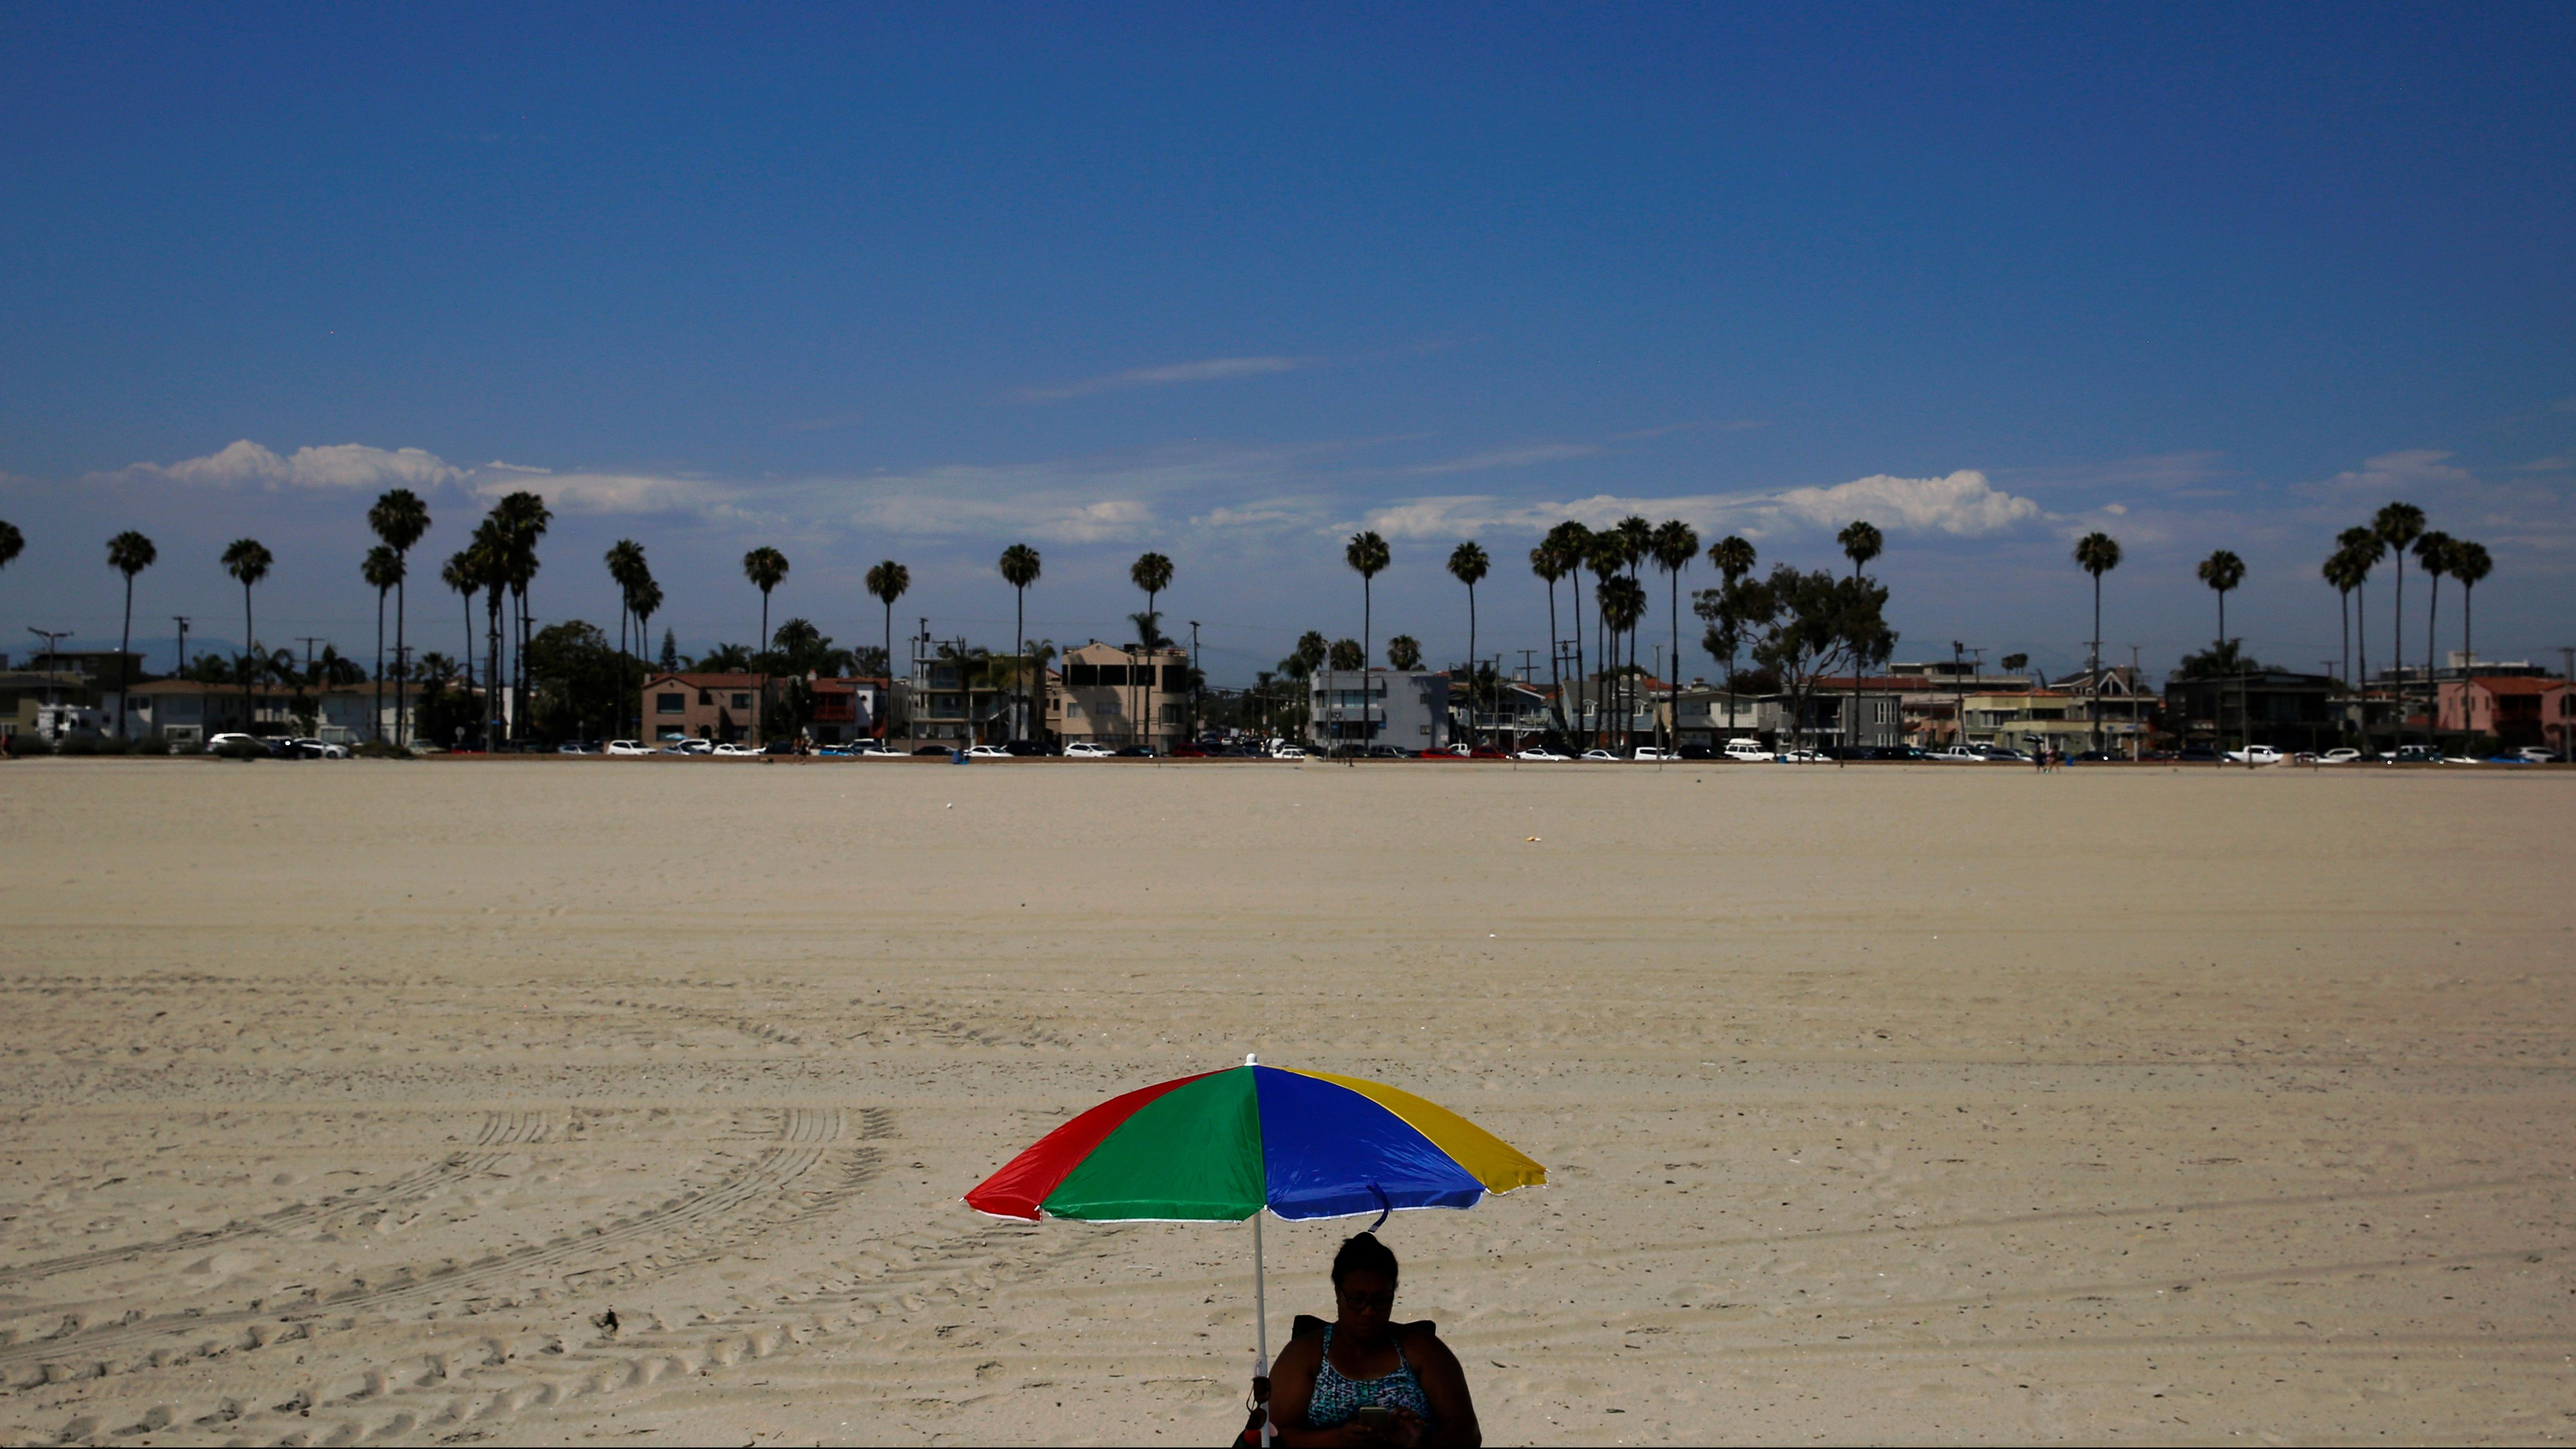 Angie Segi, 48, sits under an umbrella on the beach Friday, July 6, 2018, in Long Beach, Calif. Southern California sizzled Friday in record-breaking heat from the desert to the sea, with widespread triple-digit highs and withering conditions that stoked wildfires.